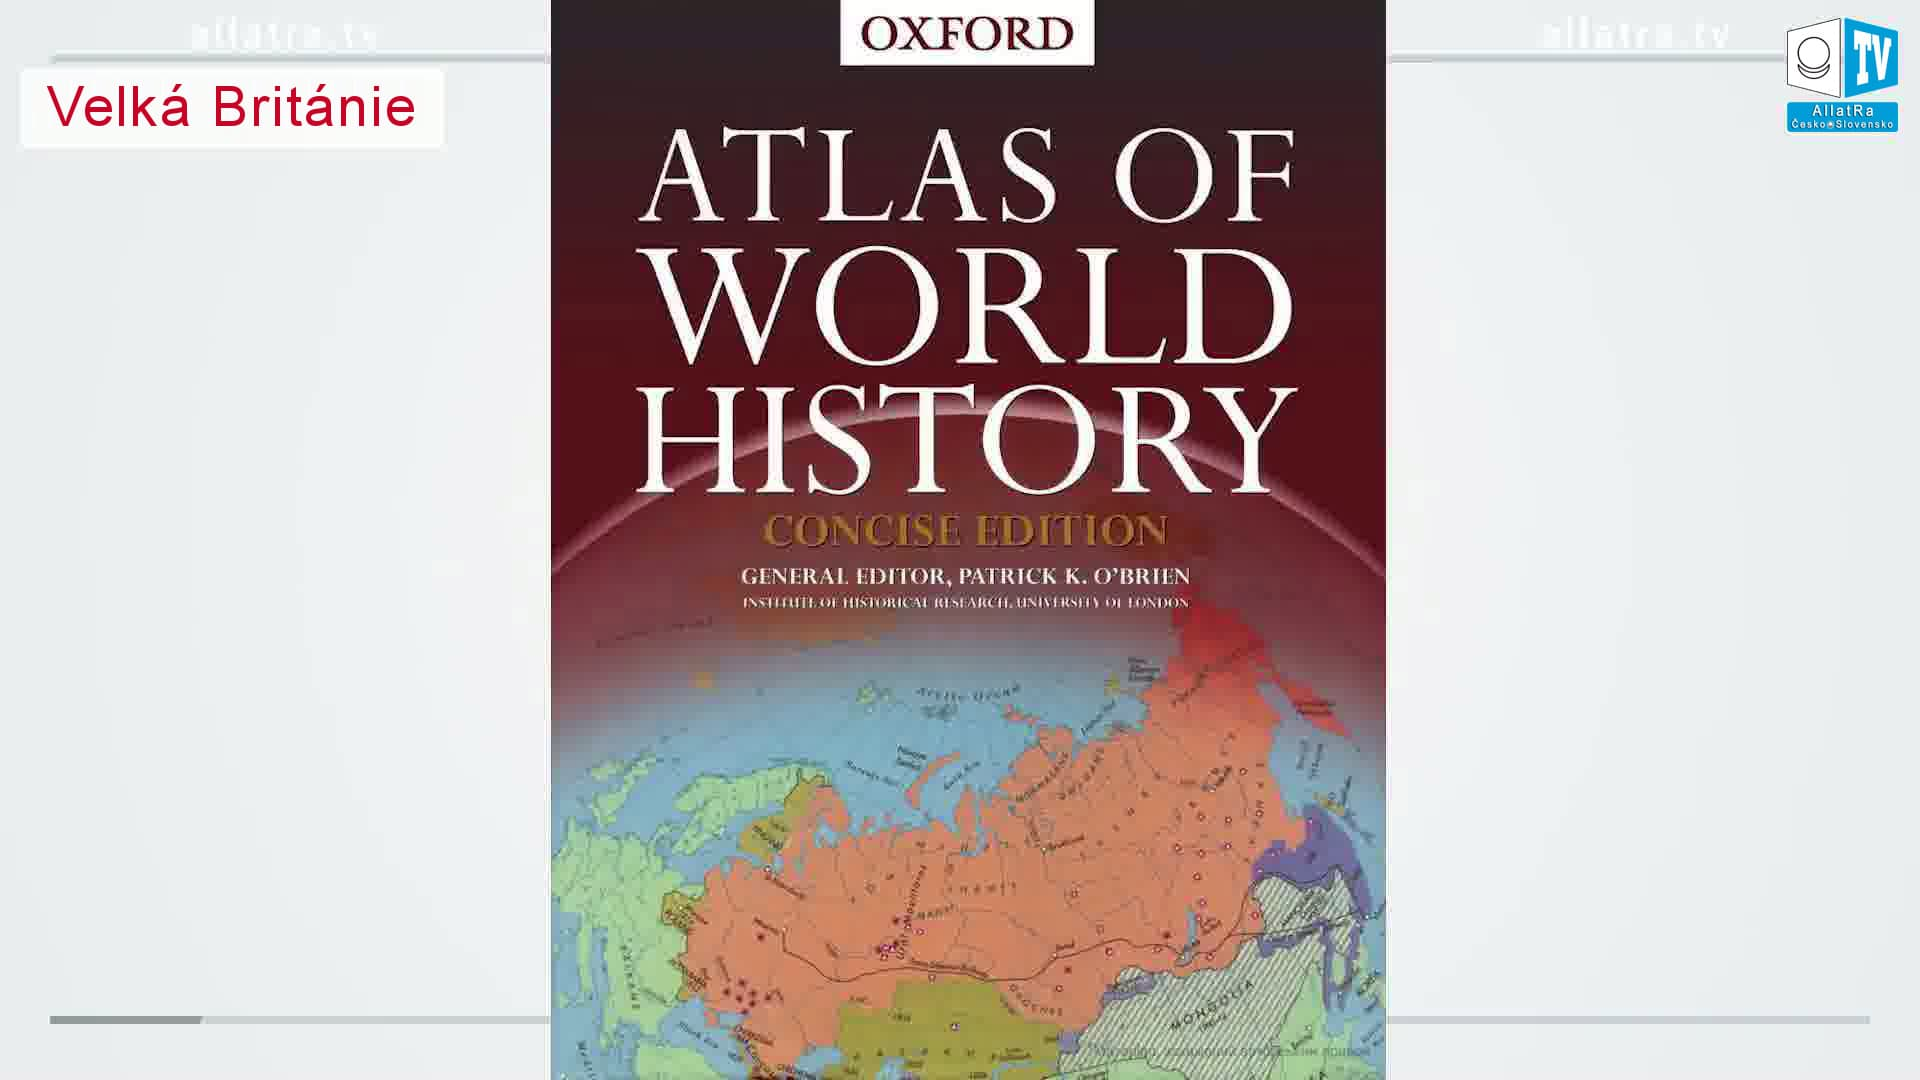 Atlas of the world history. Oxford